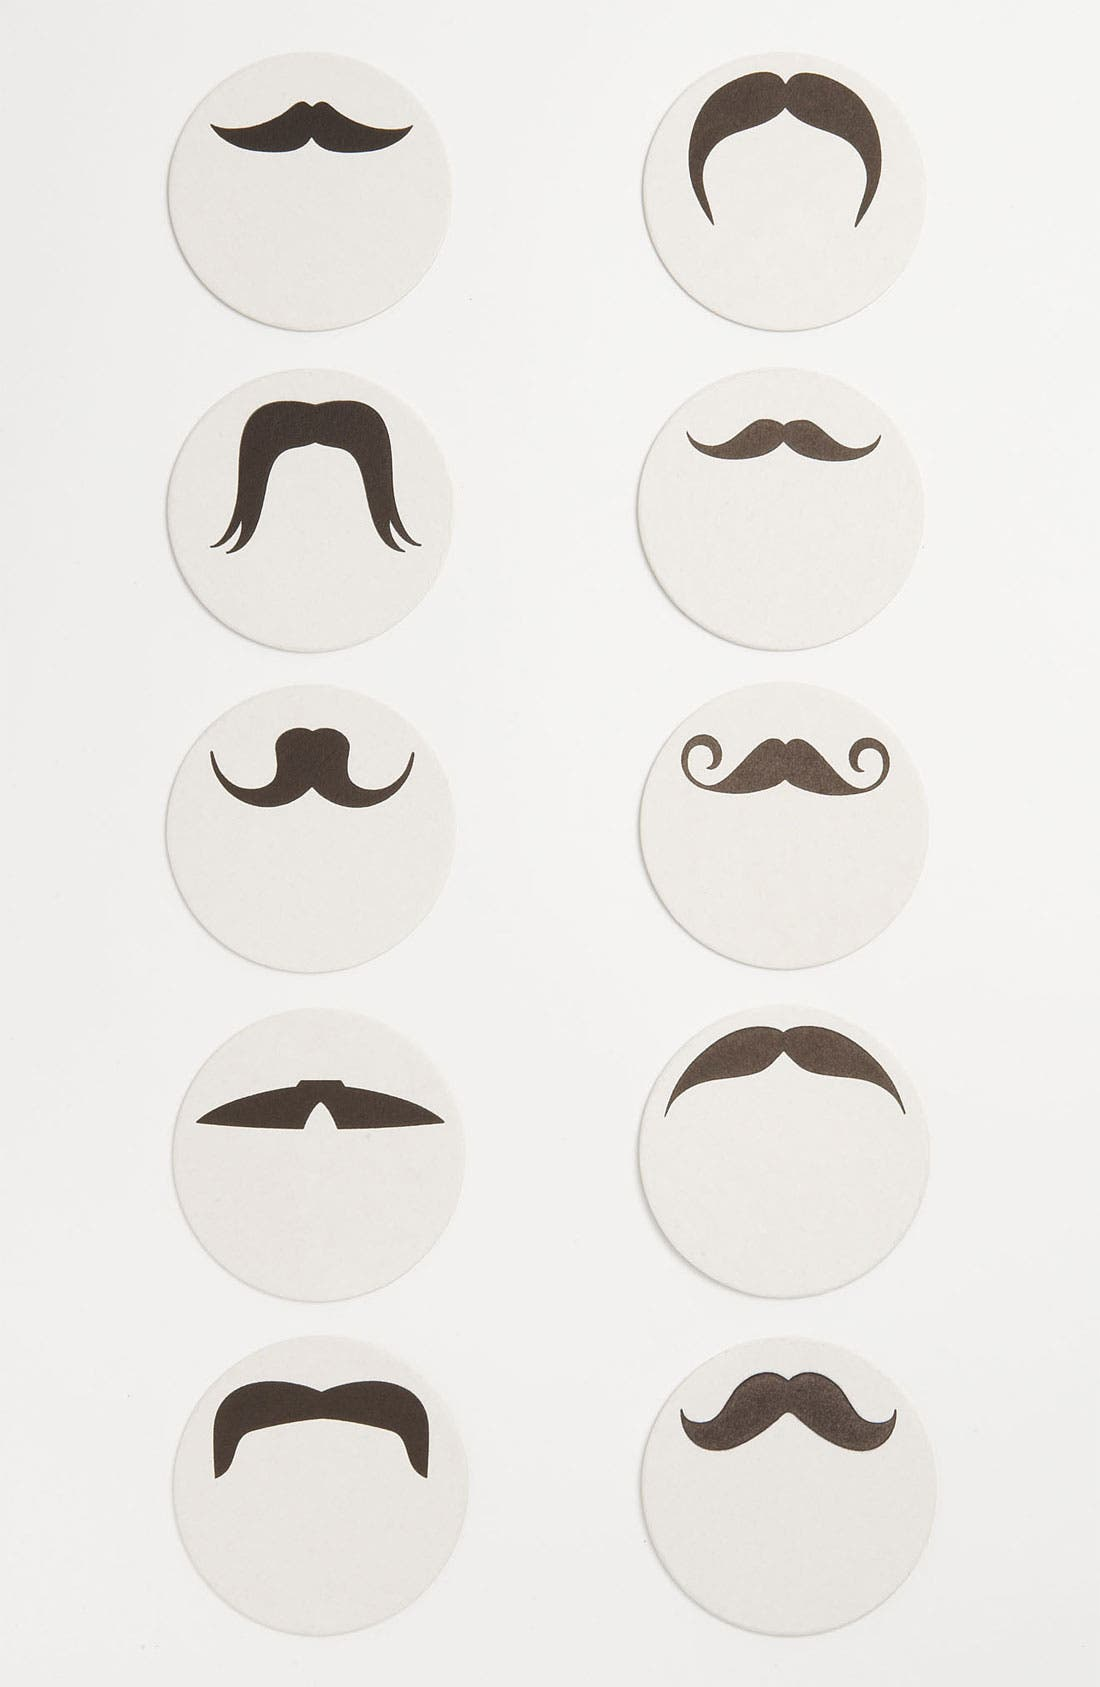 Main Image - 'Mustache' Letterpress Coasters (Set of 10)